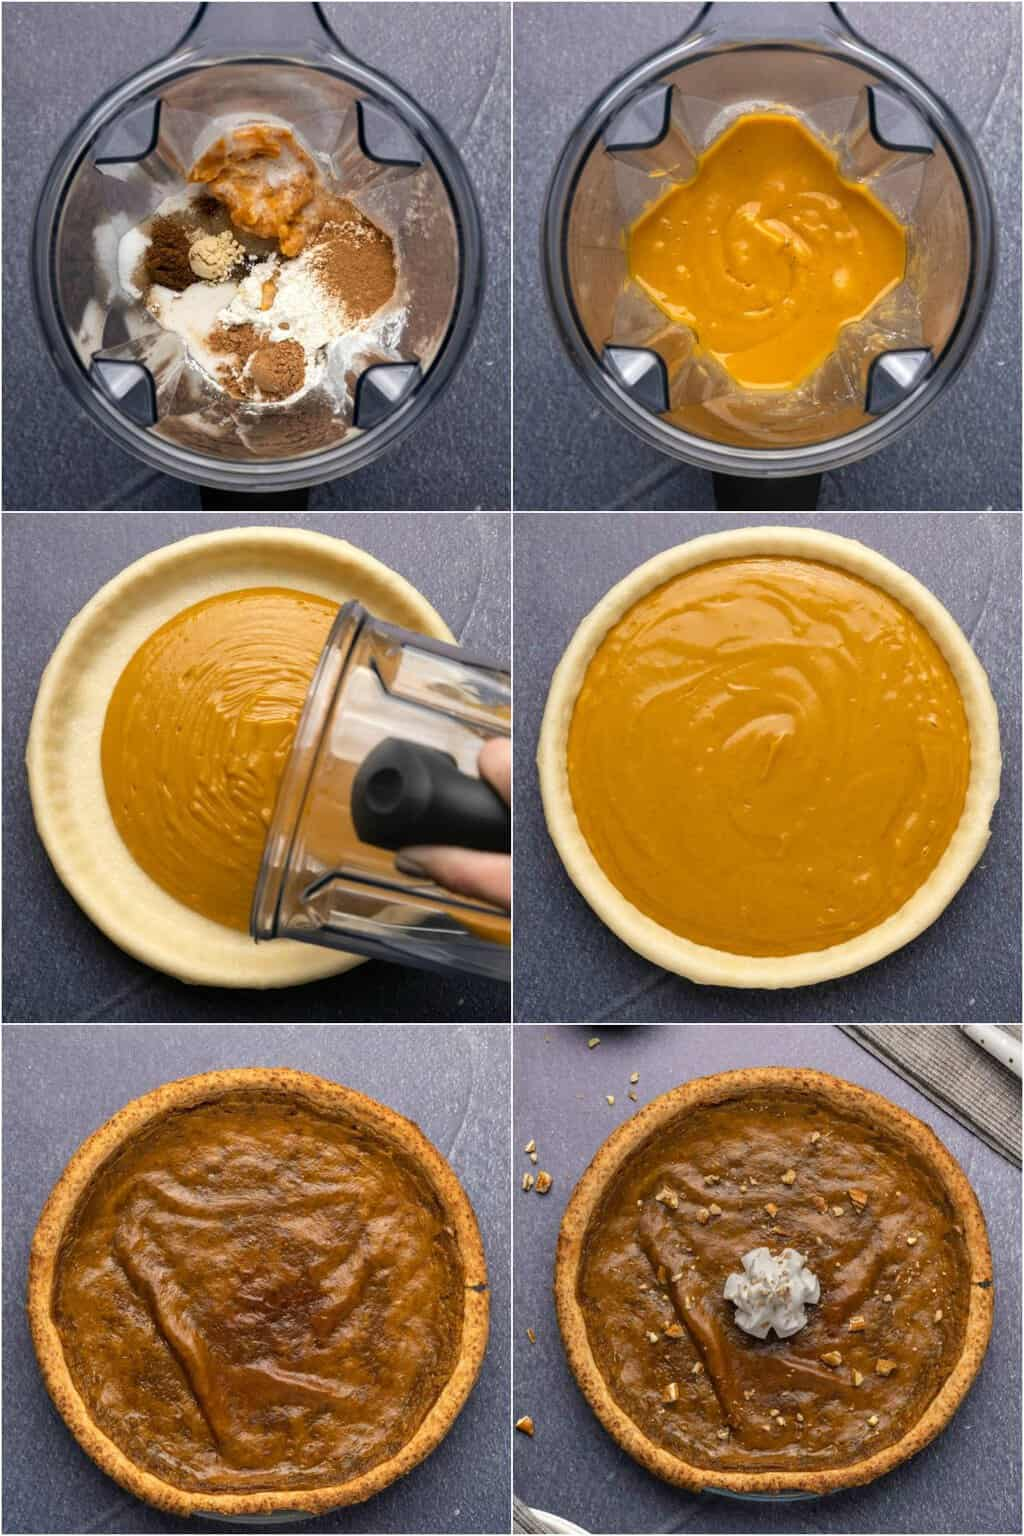 Step by step process photo collage of making vegan sweet potato pie.